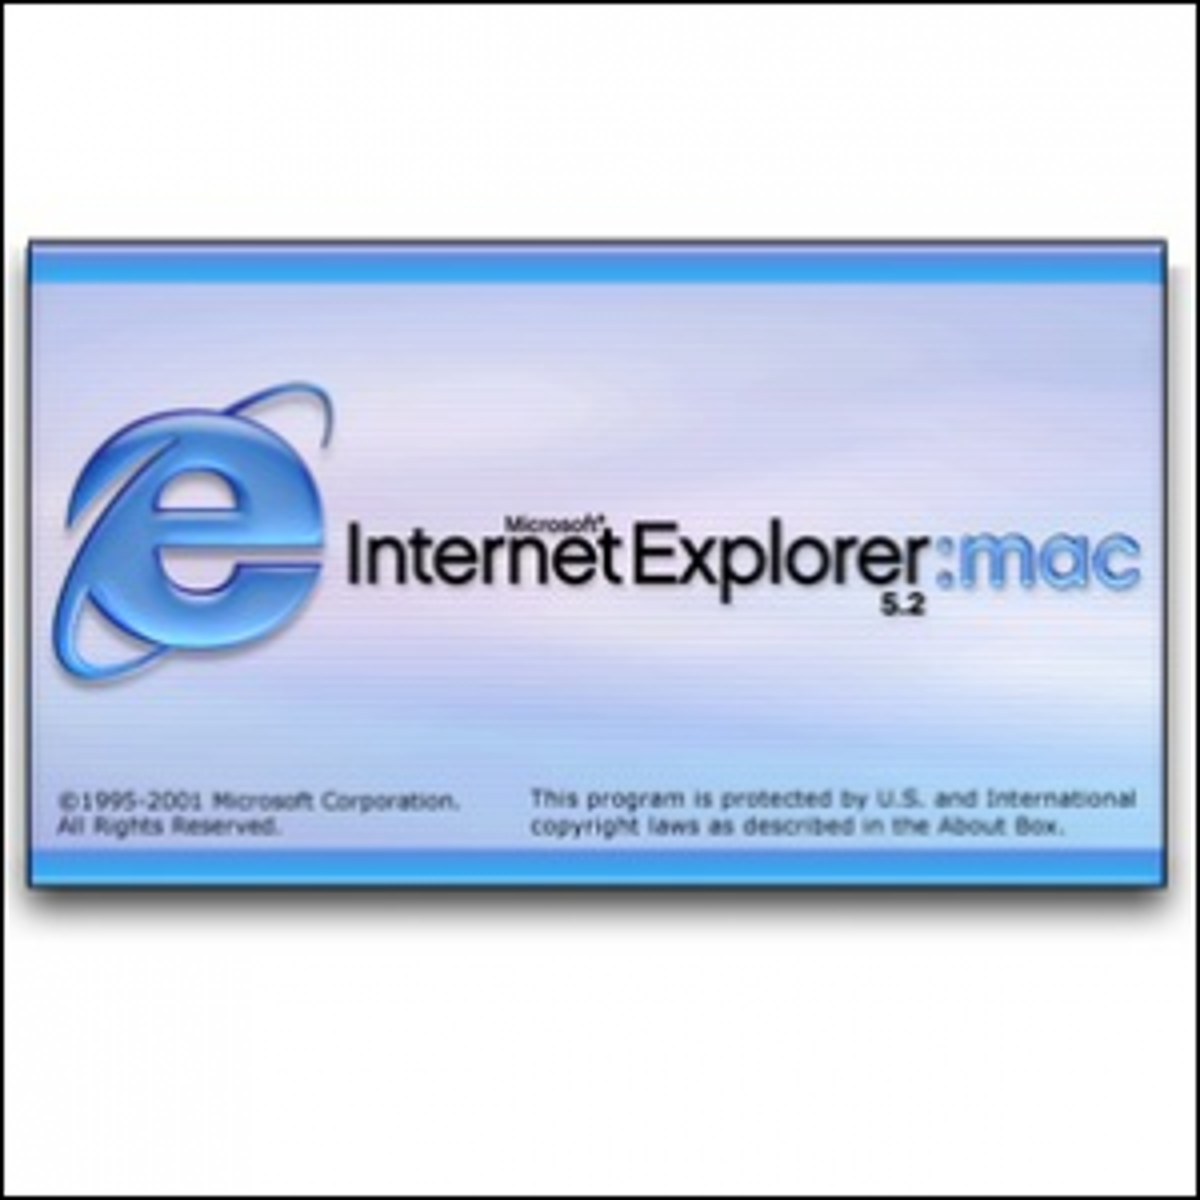 The splash screen for Internet Explorer:mac 5.2.